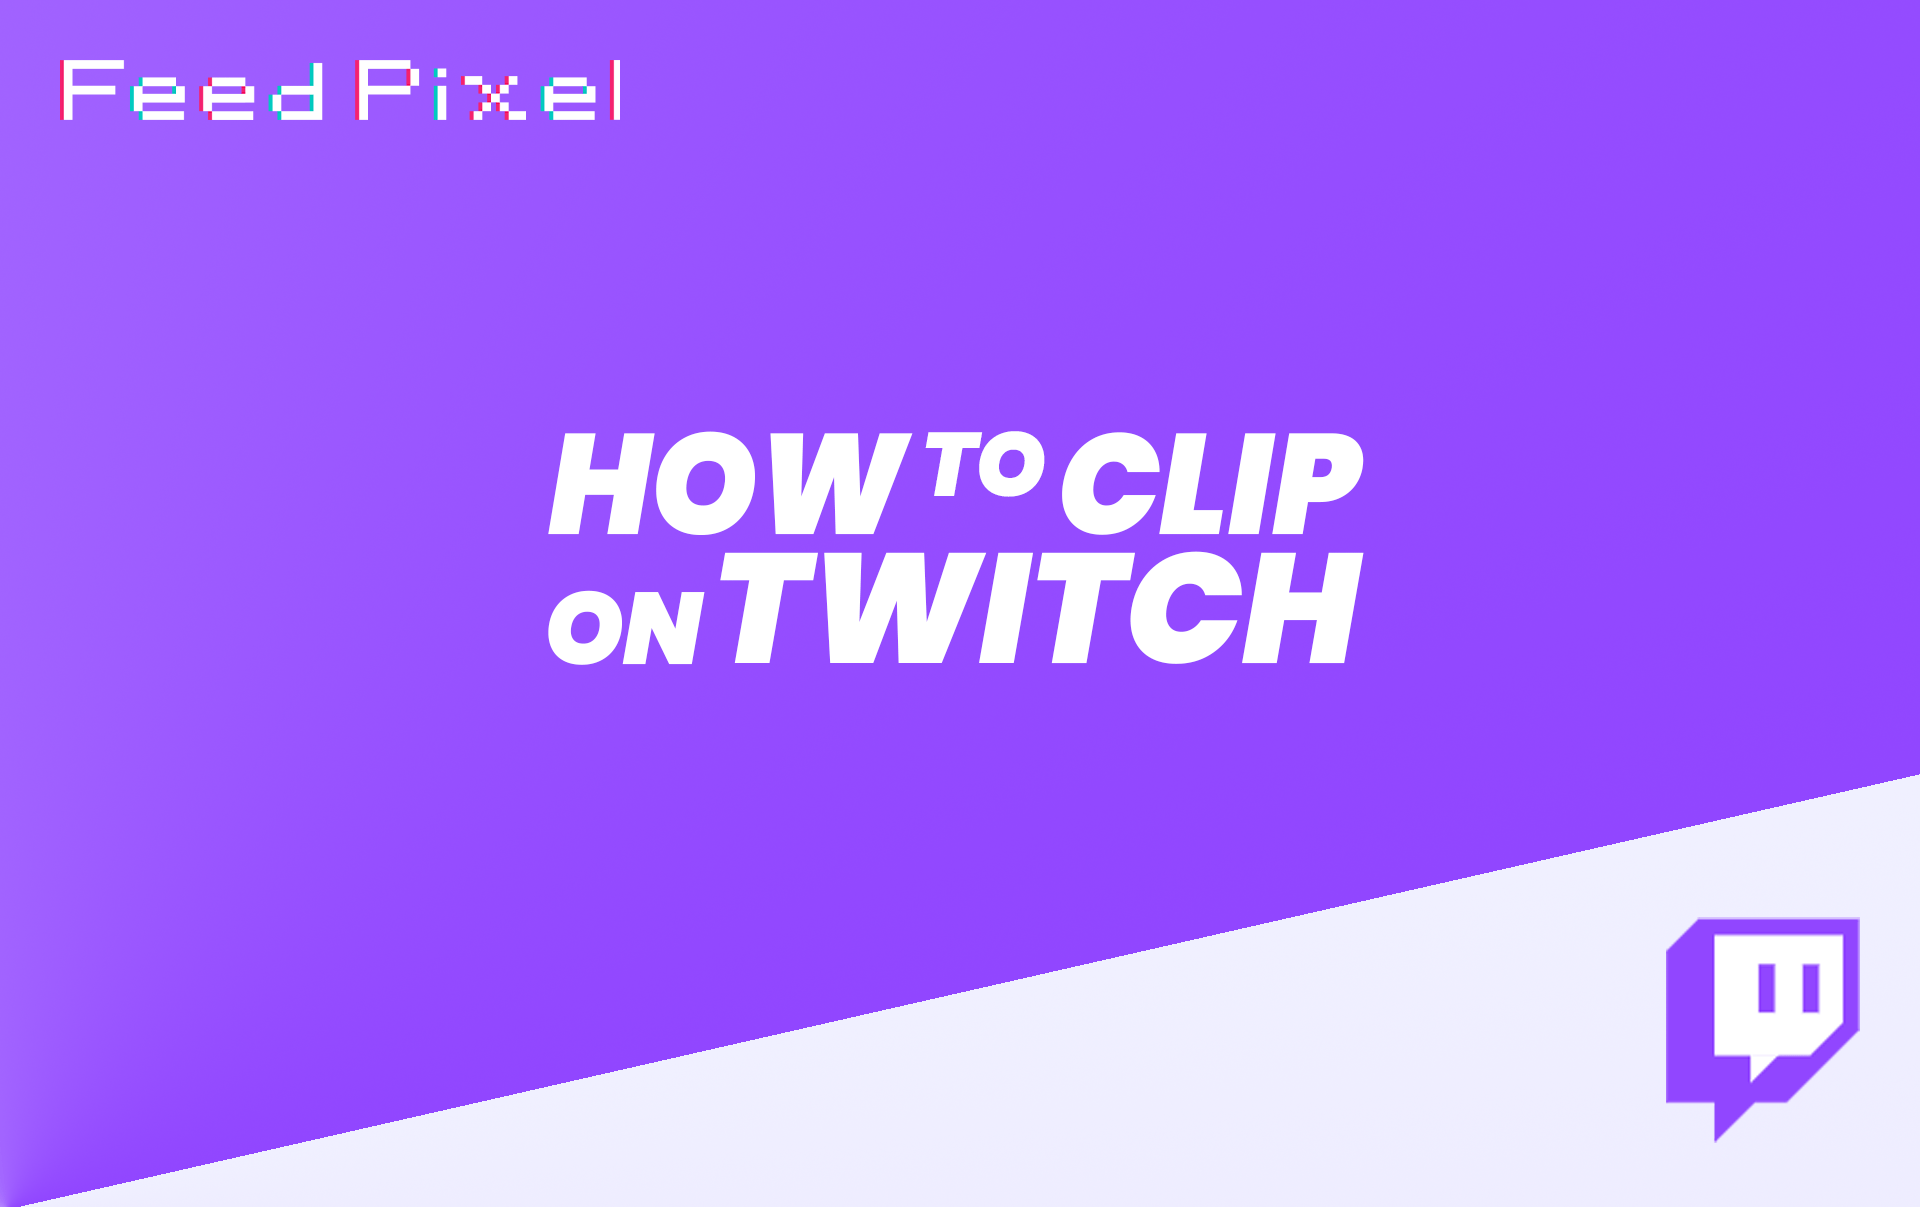 How To Clip On Twitch?